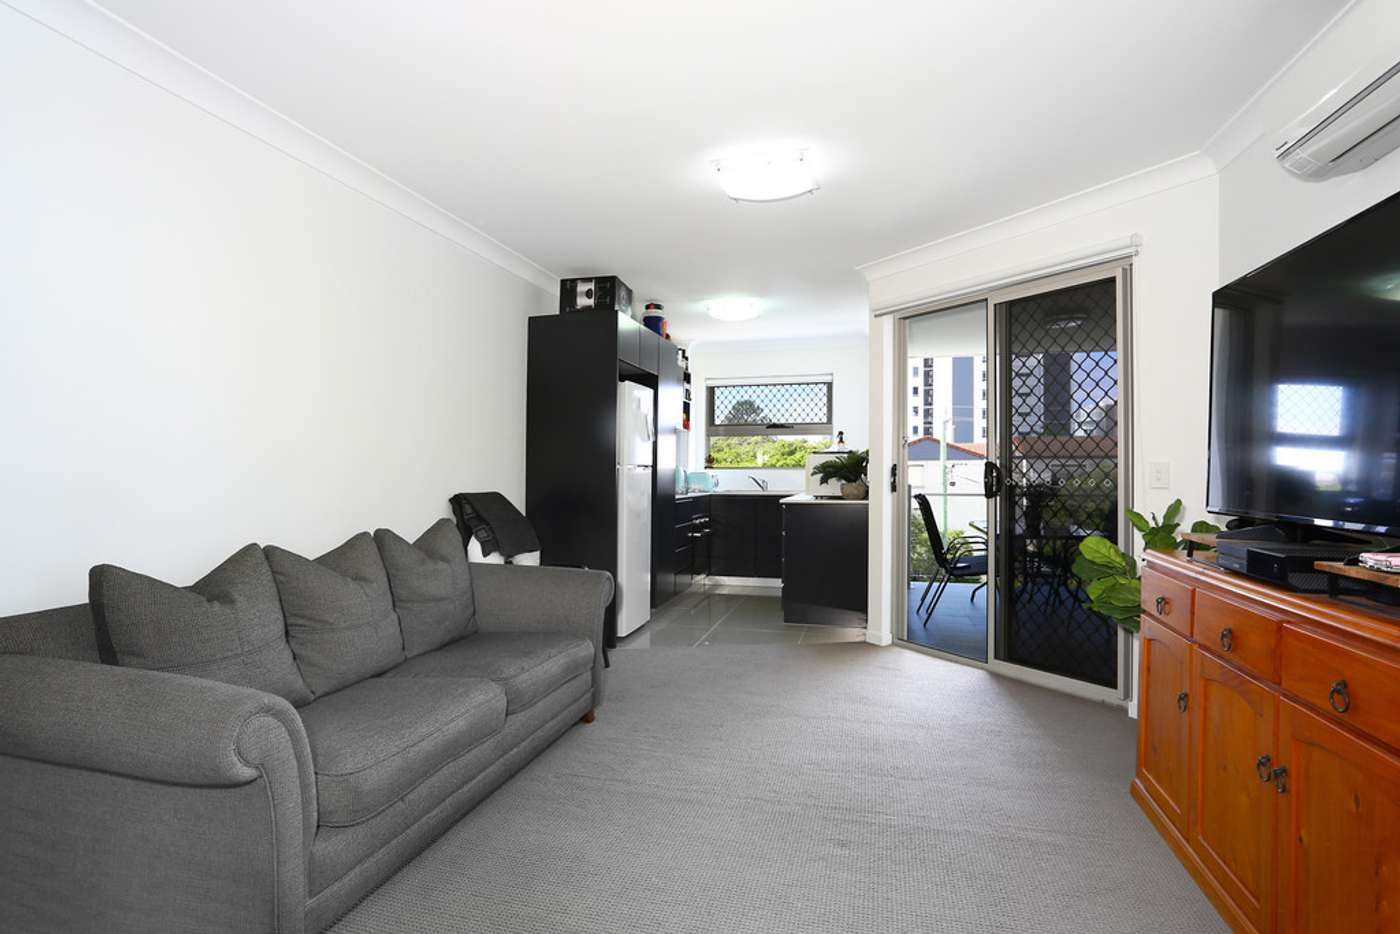 Main view of Homely apartment listing, 14/14-16 Proud Street, Labrador QLD 4215